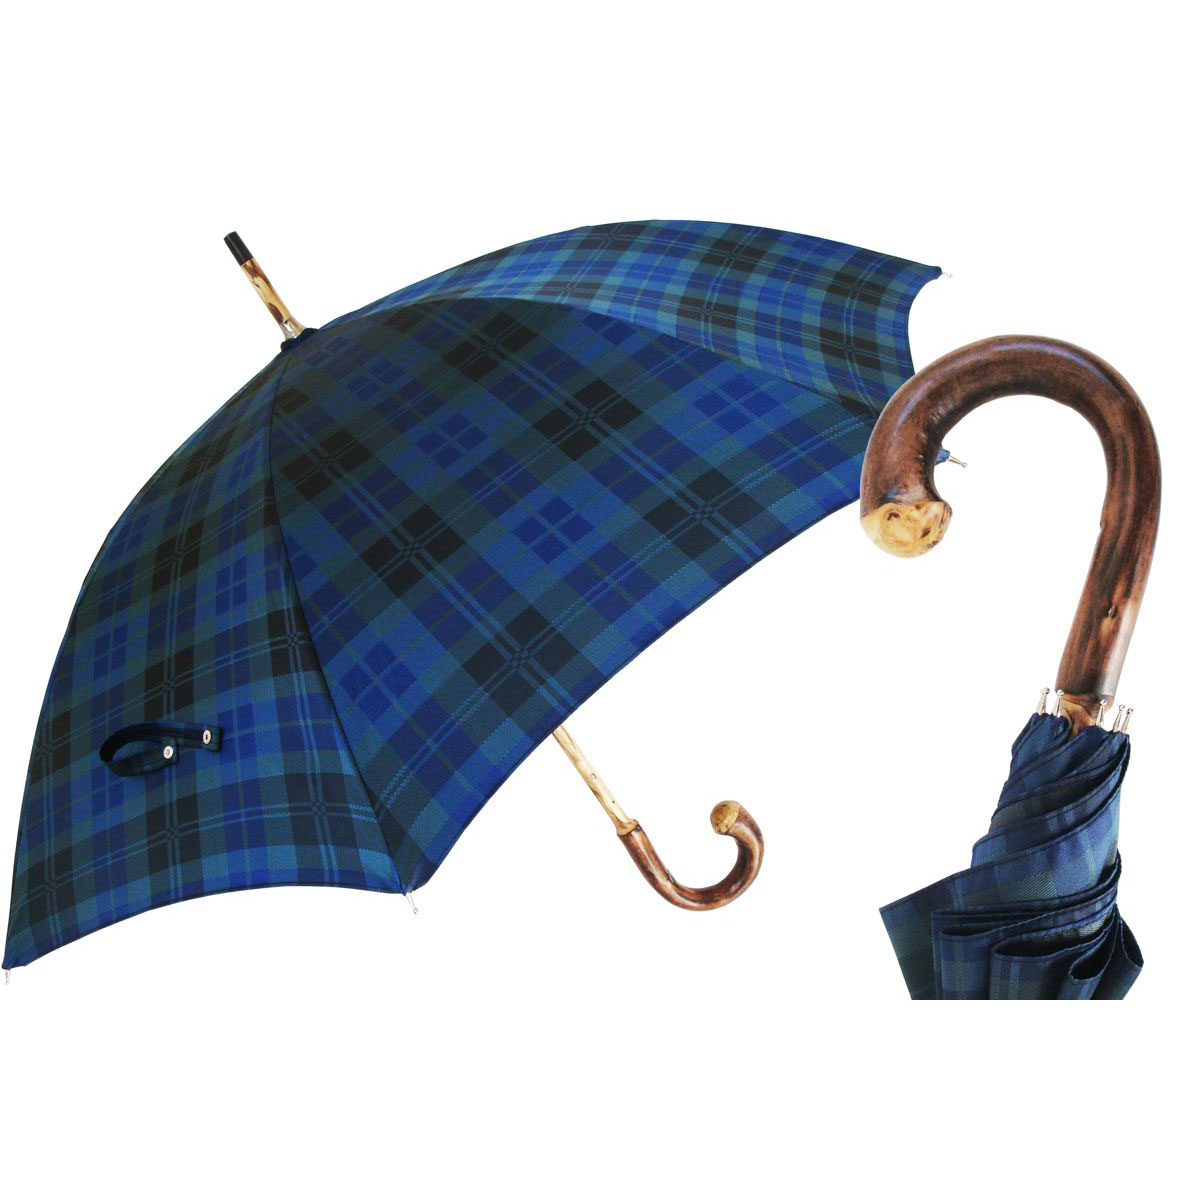 Pasotti Ombrelli Blue Tartan Solid Stick Chestnut Men's Umbrella